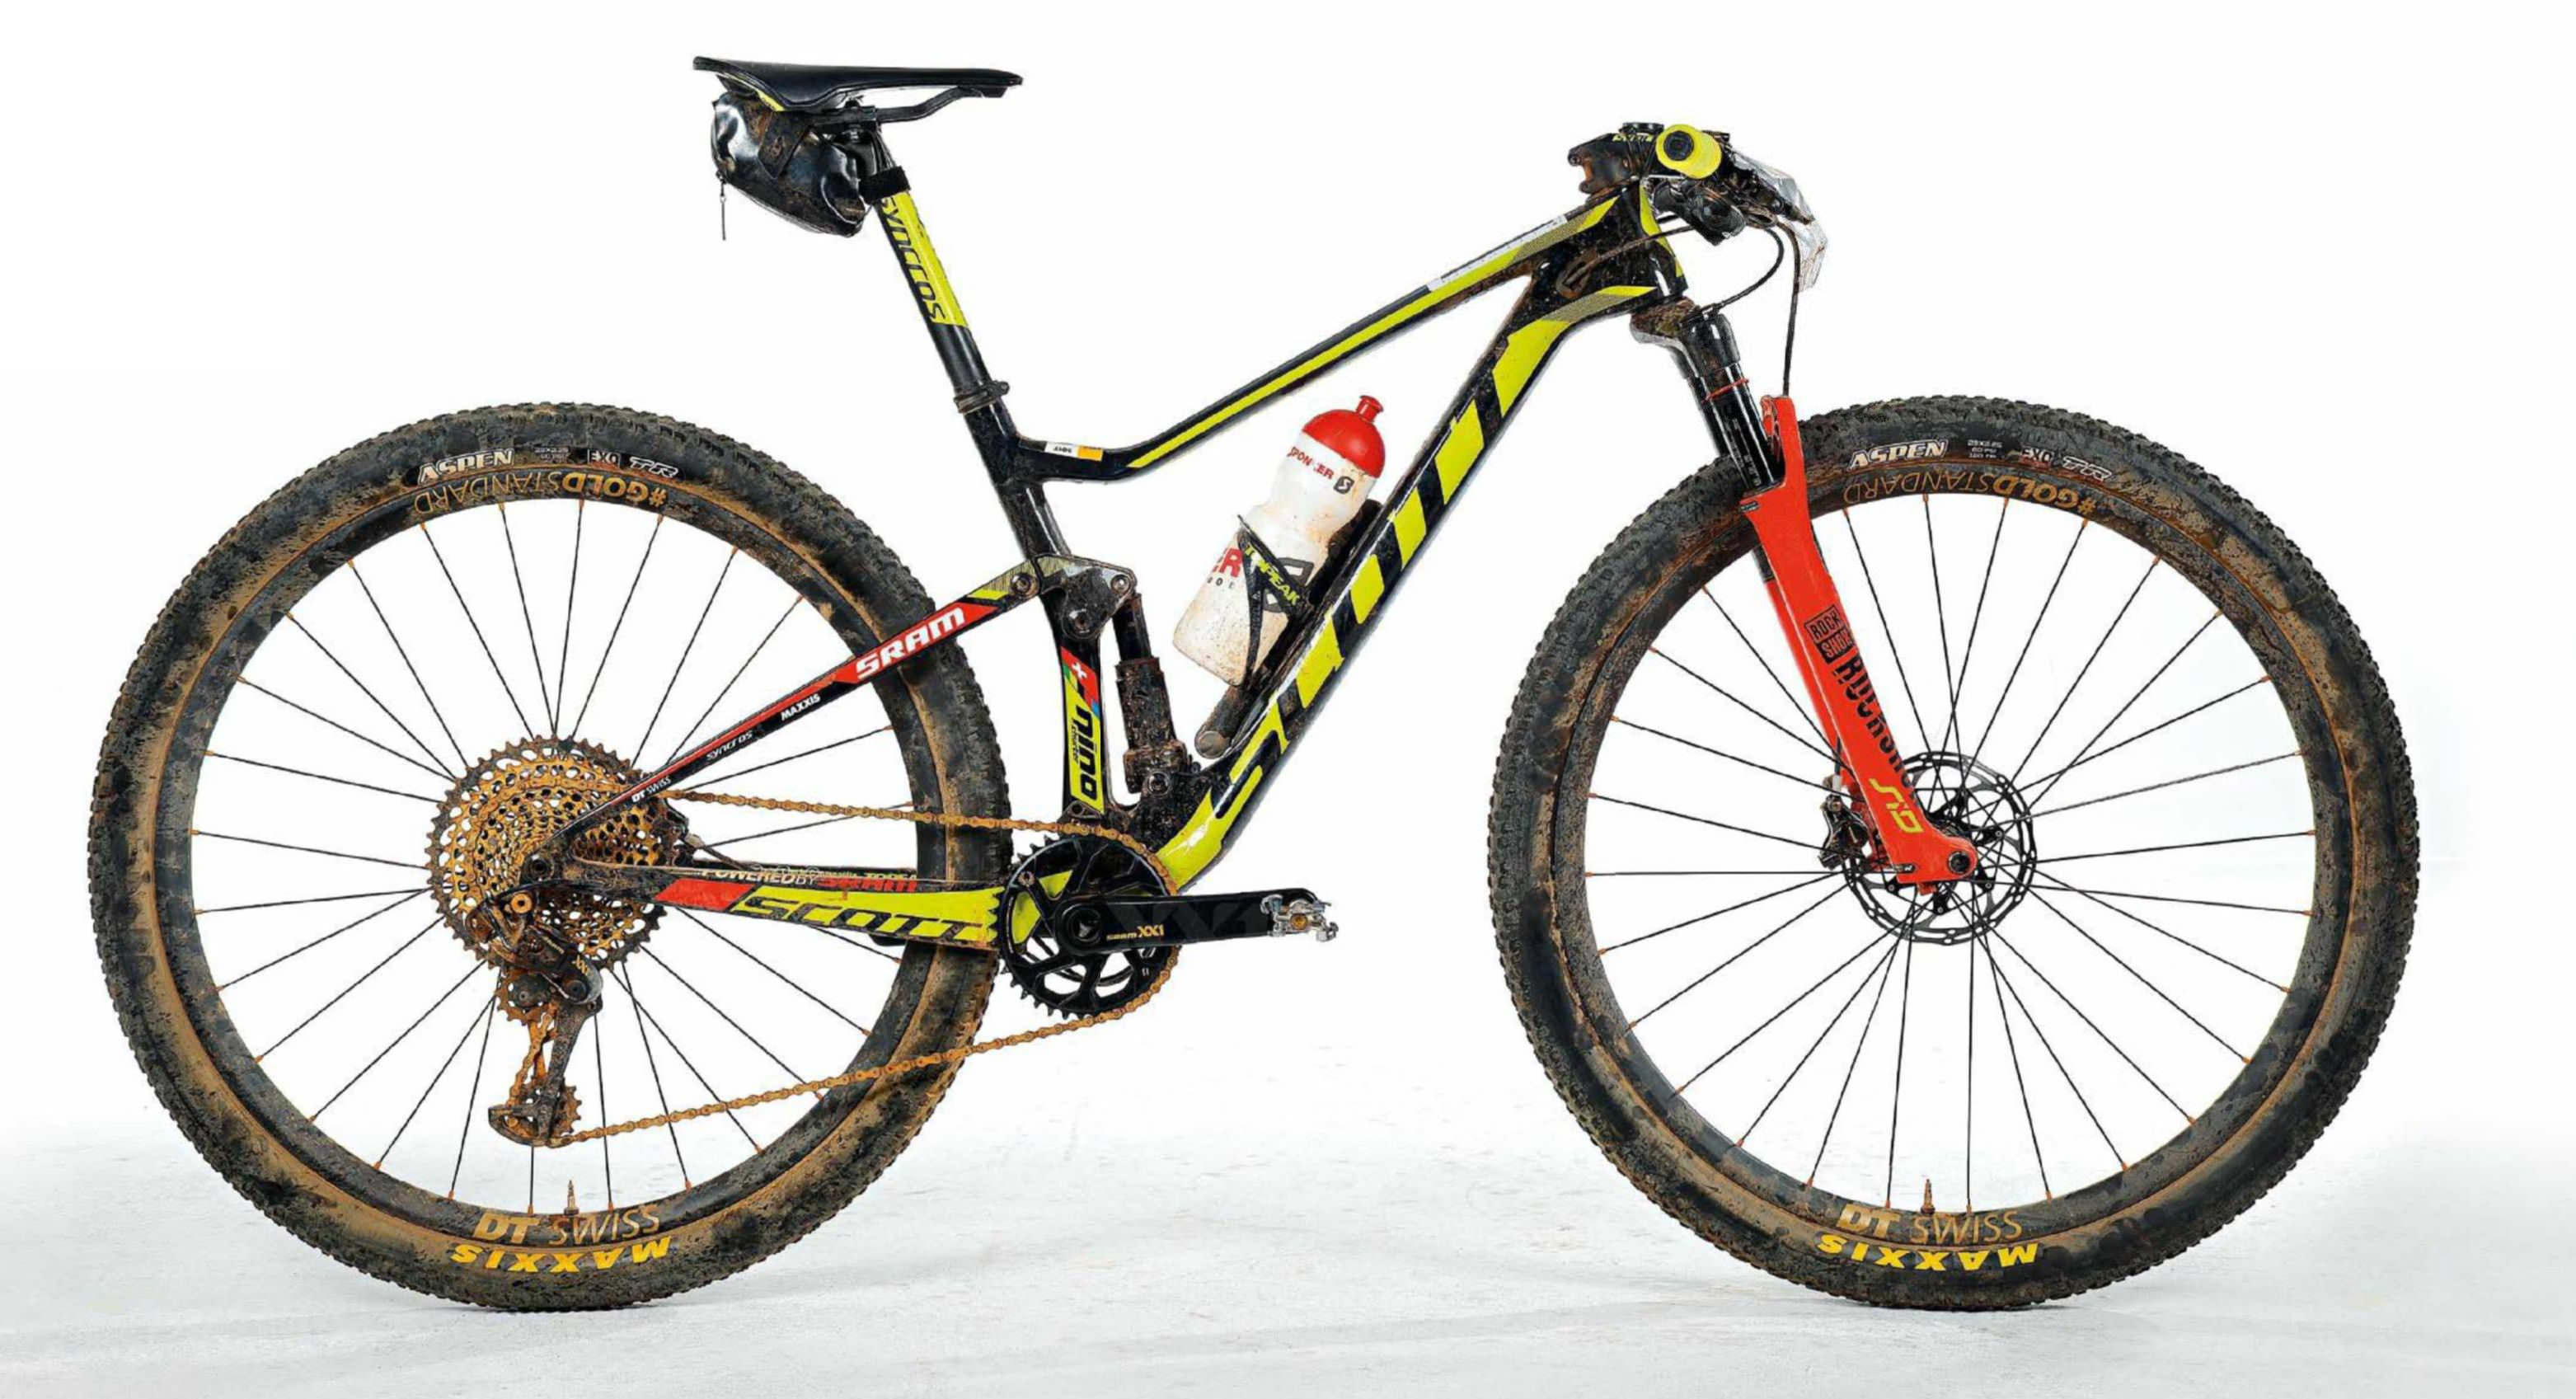 Cape Epic- Winning Scott Spark 900 RC